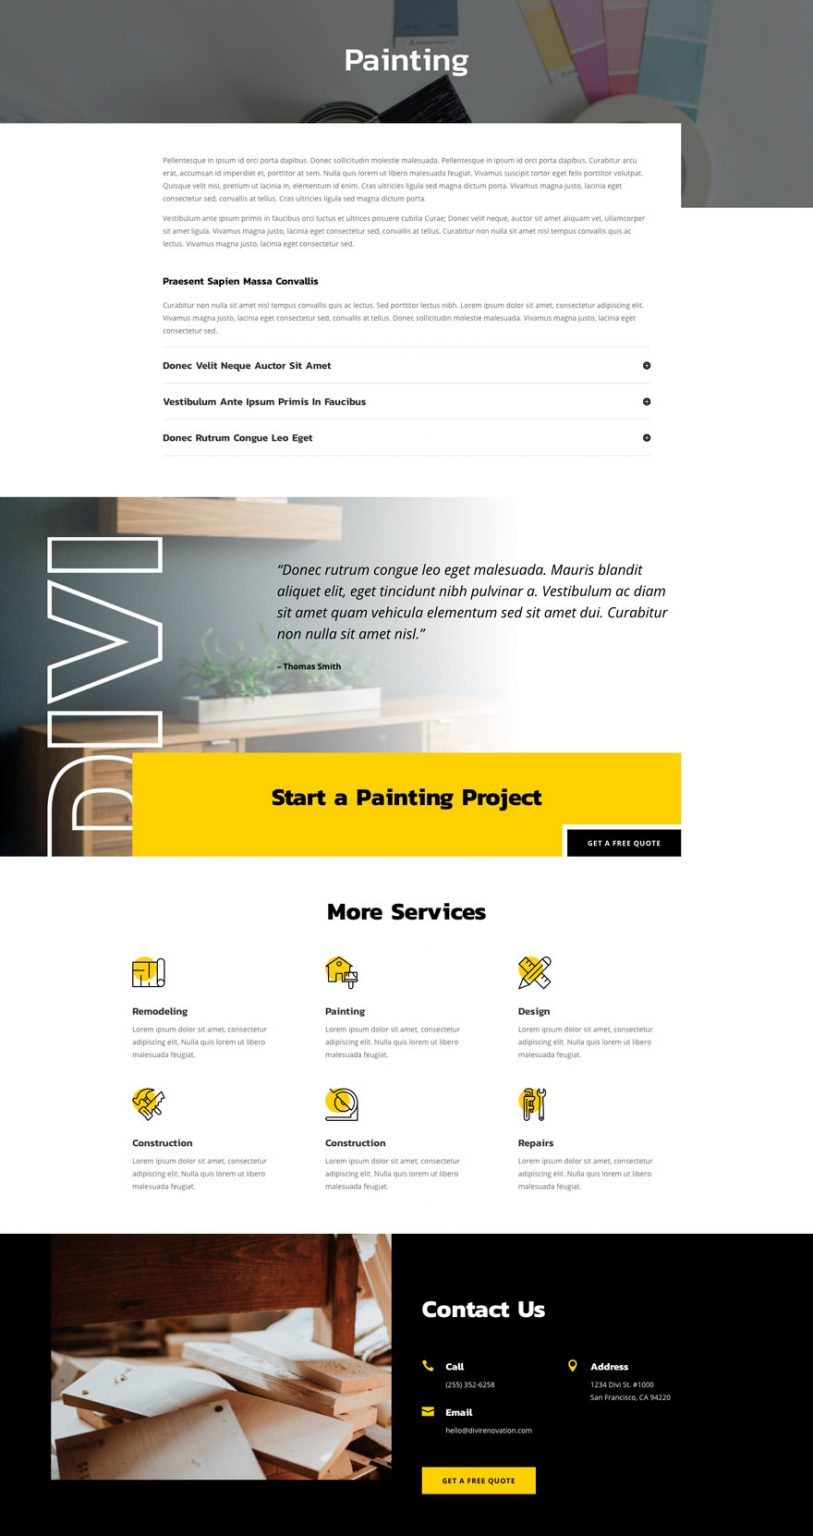 renovation service page - Renovation Divi Layout By Elegant Themes